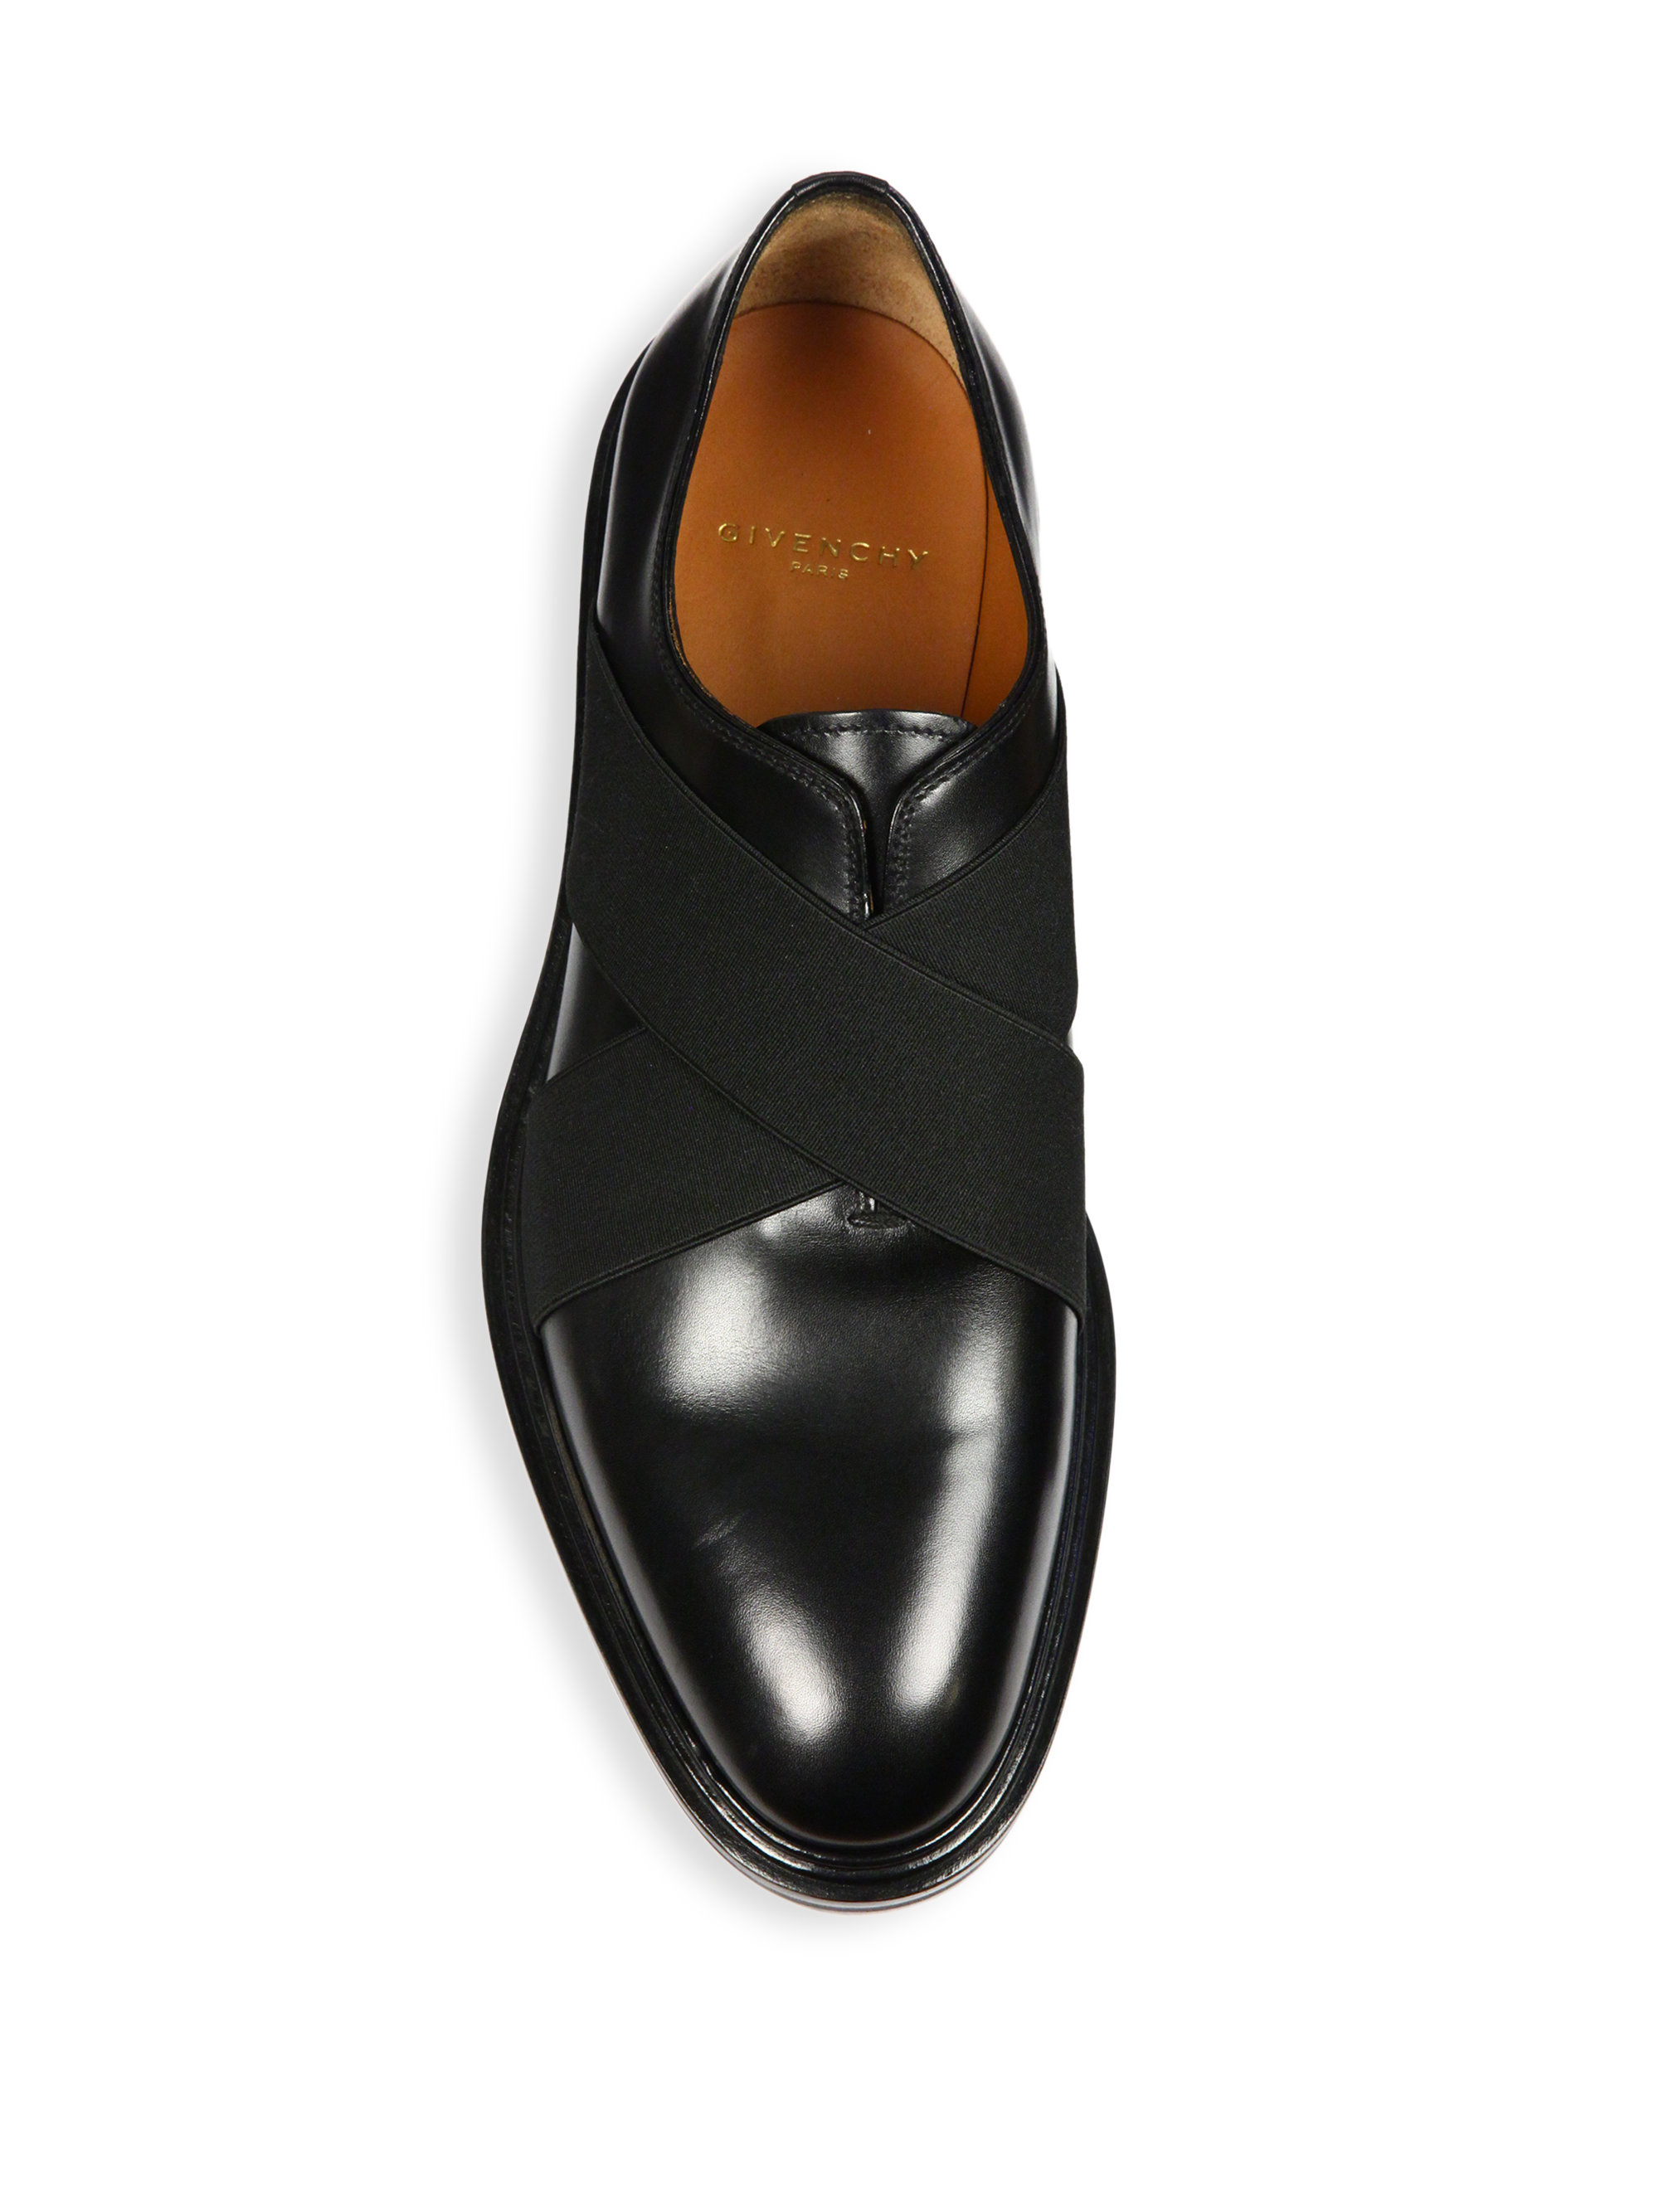 Lyst Givenchy Elastic Strap Leather Loafers In Black For Men